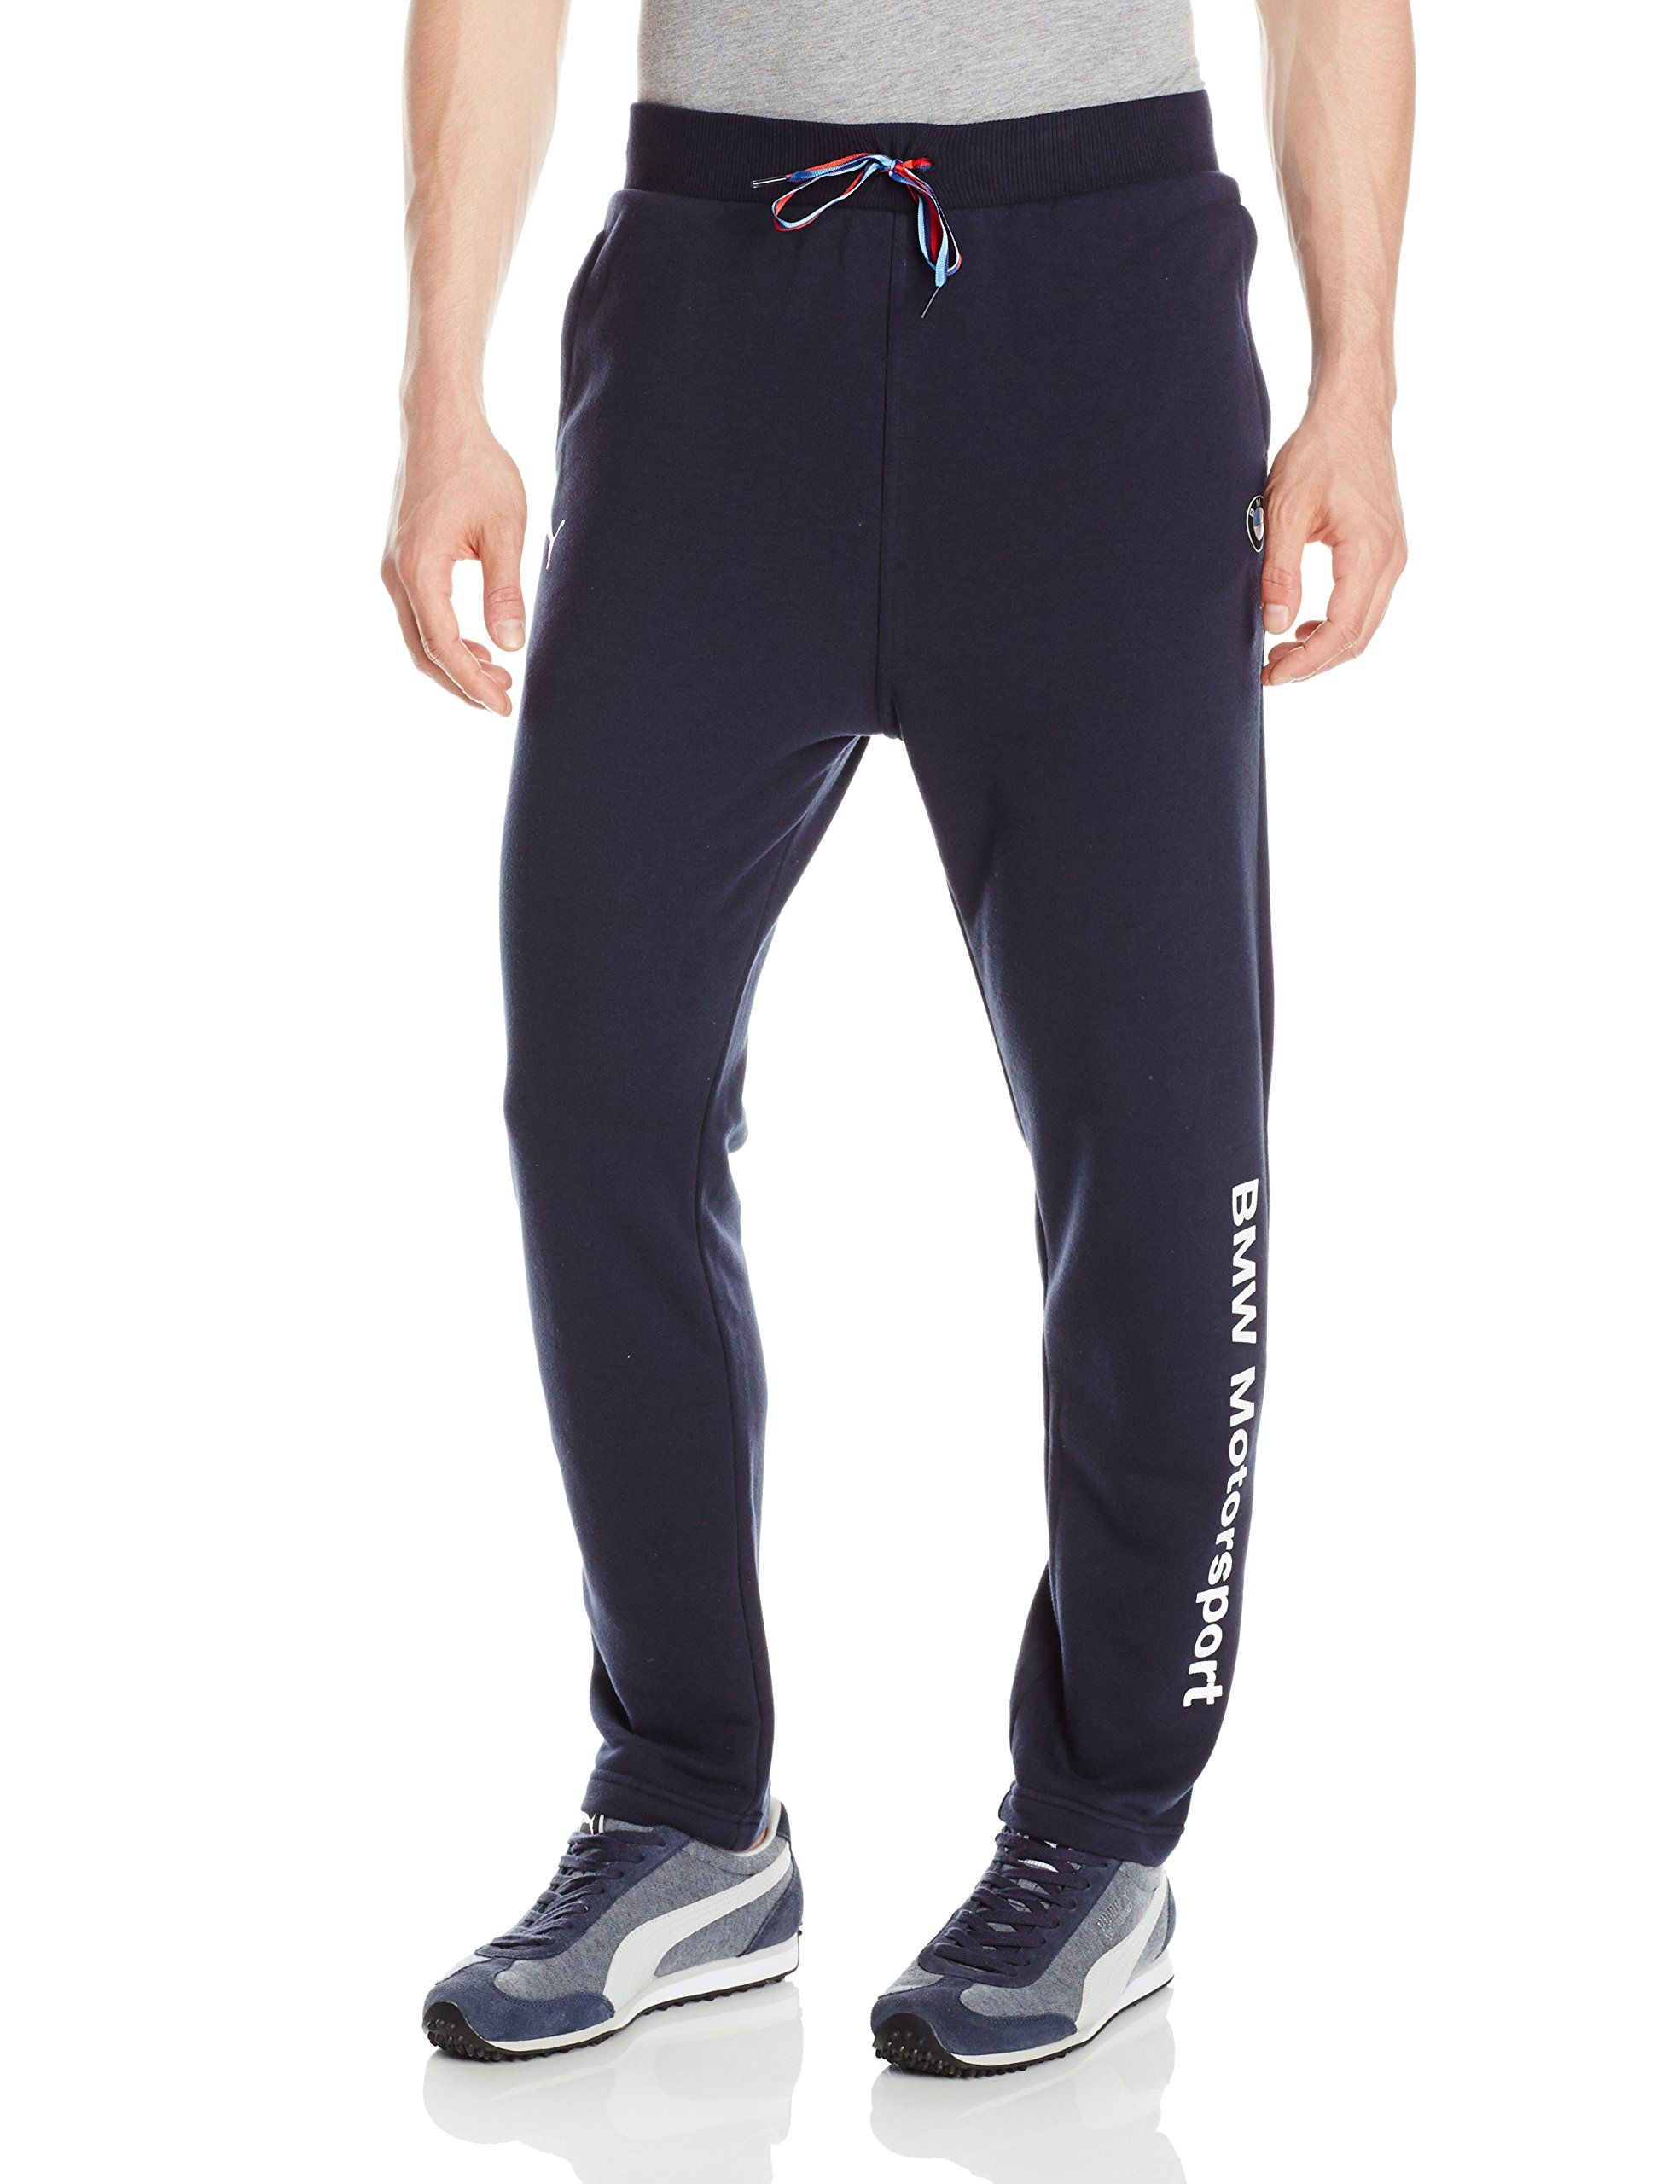 9a8f8a4308617 PUMA Men's Bmw MSP Sweat Pants at Amazon Men's Clothing store: | My ...